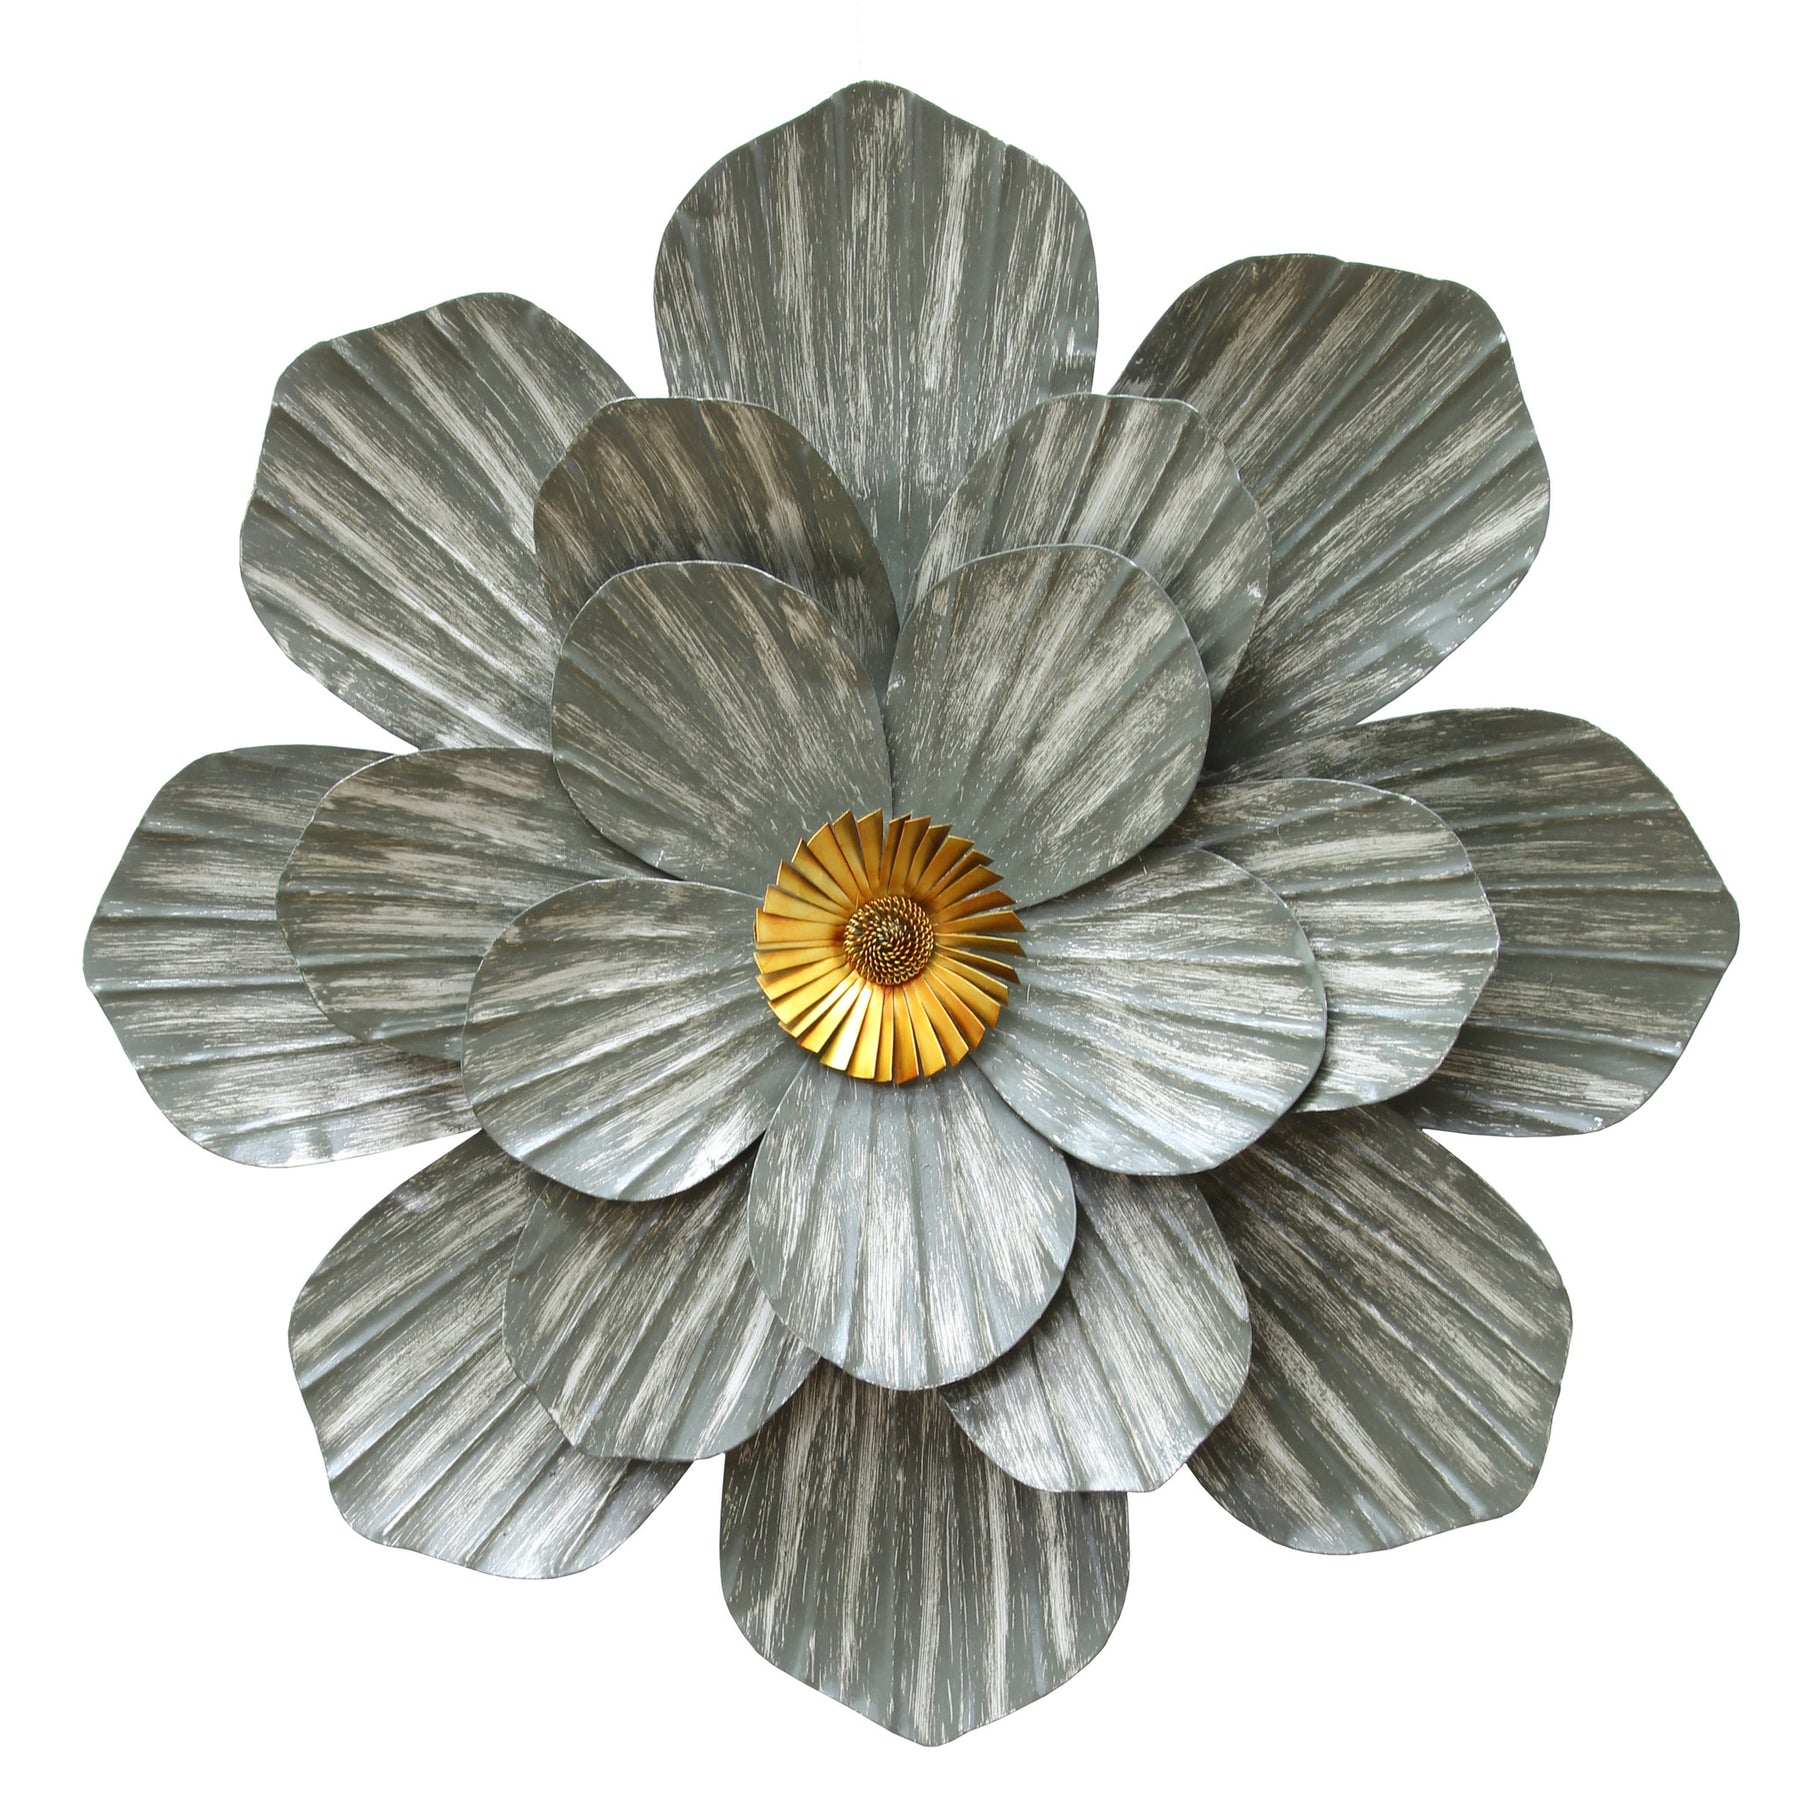 stratton home décor galvanized flower wall décor – stratton home decor